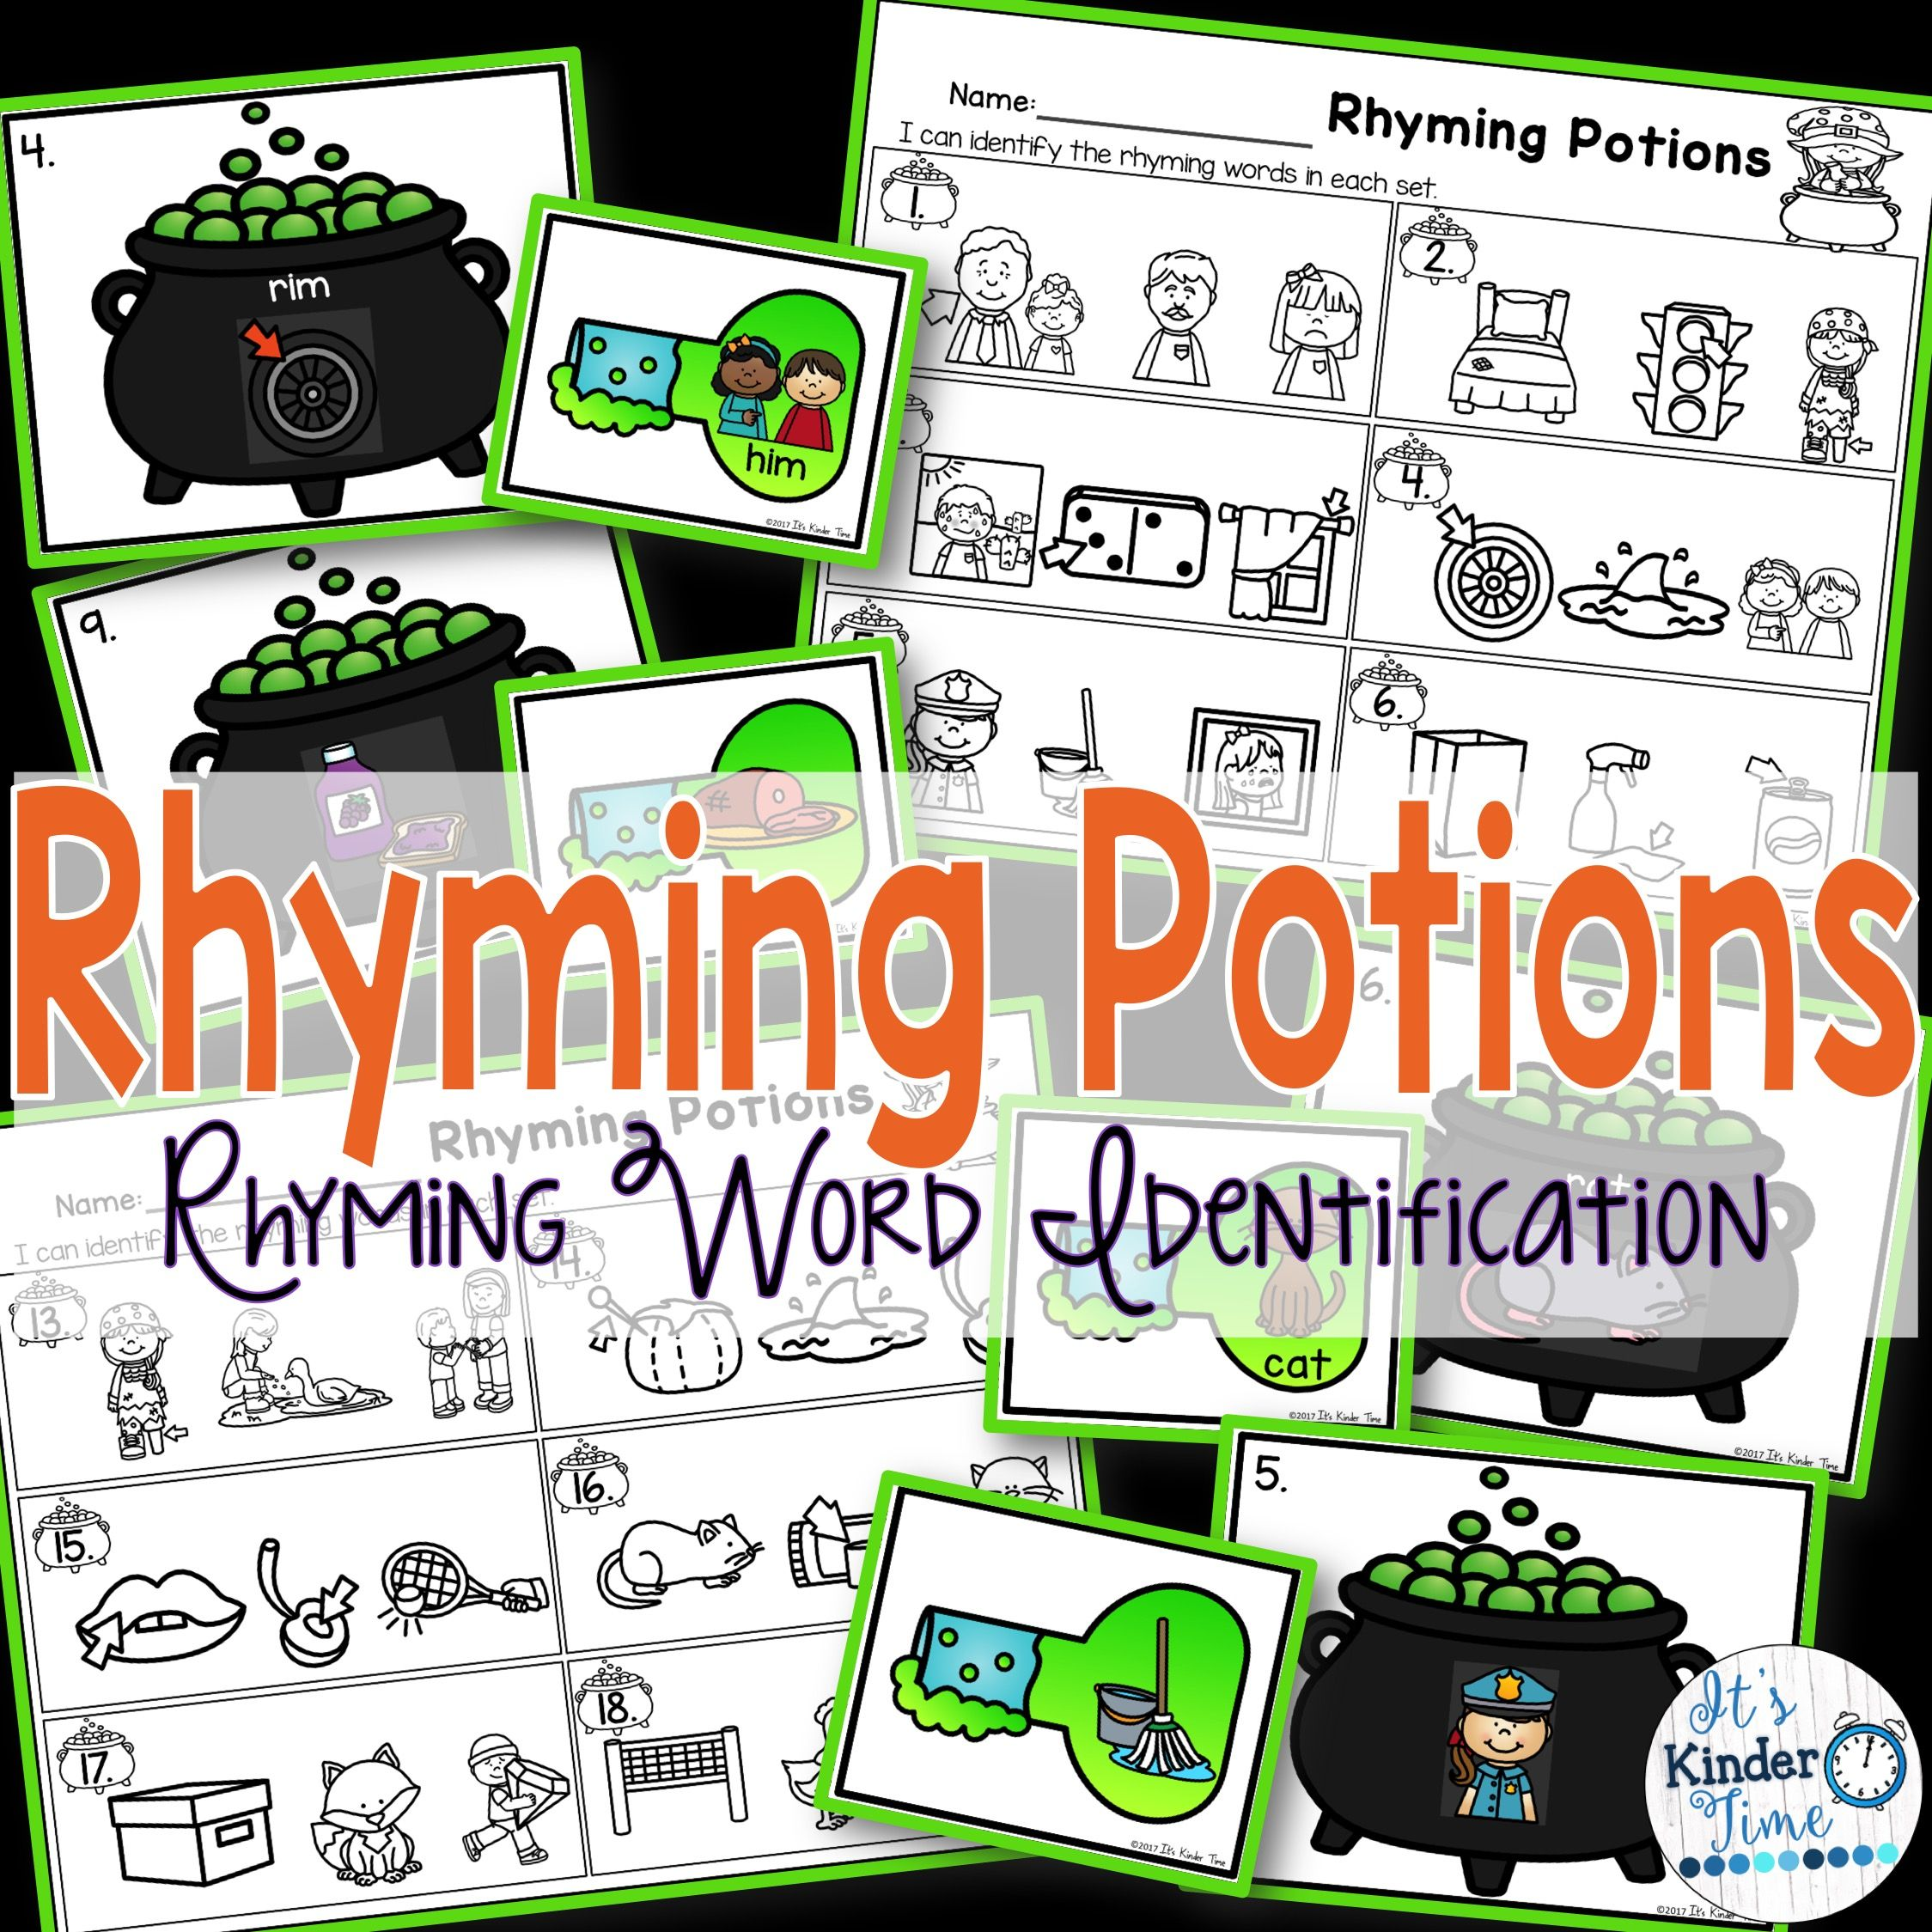 Rhyming Potions